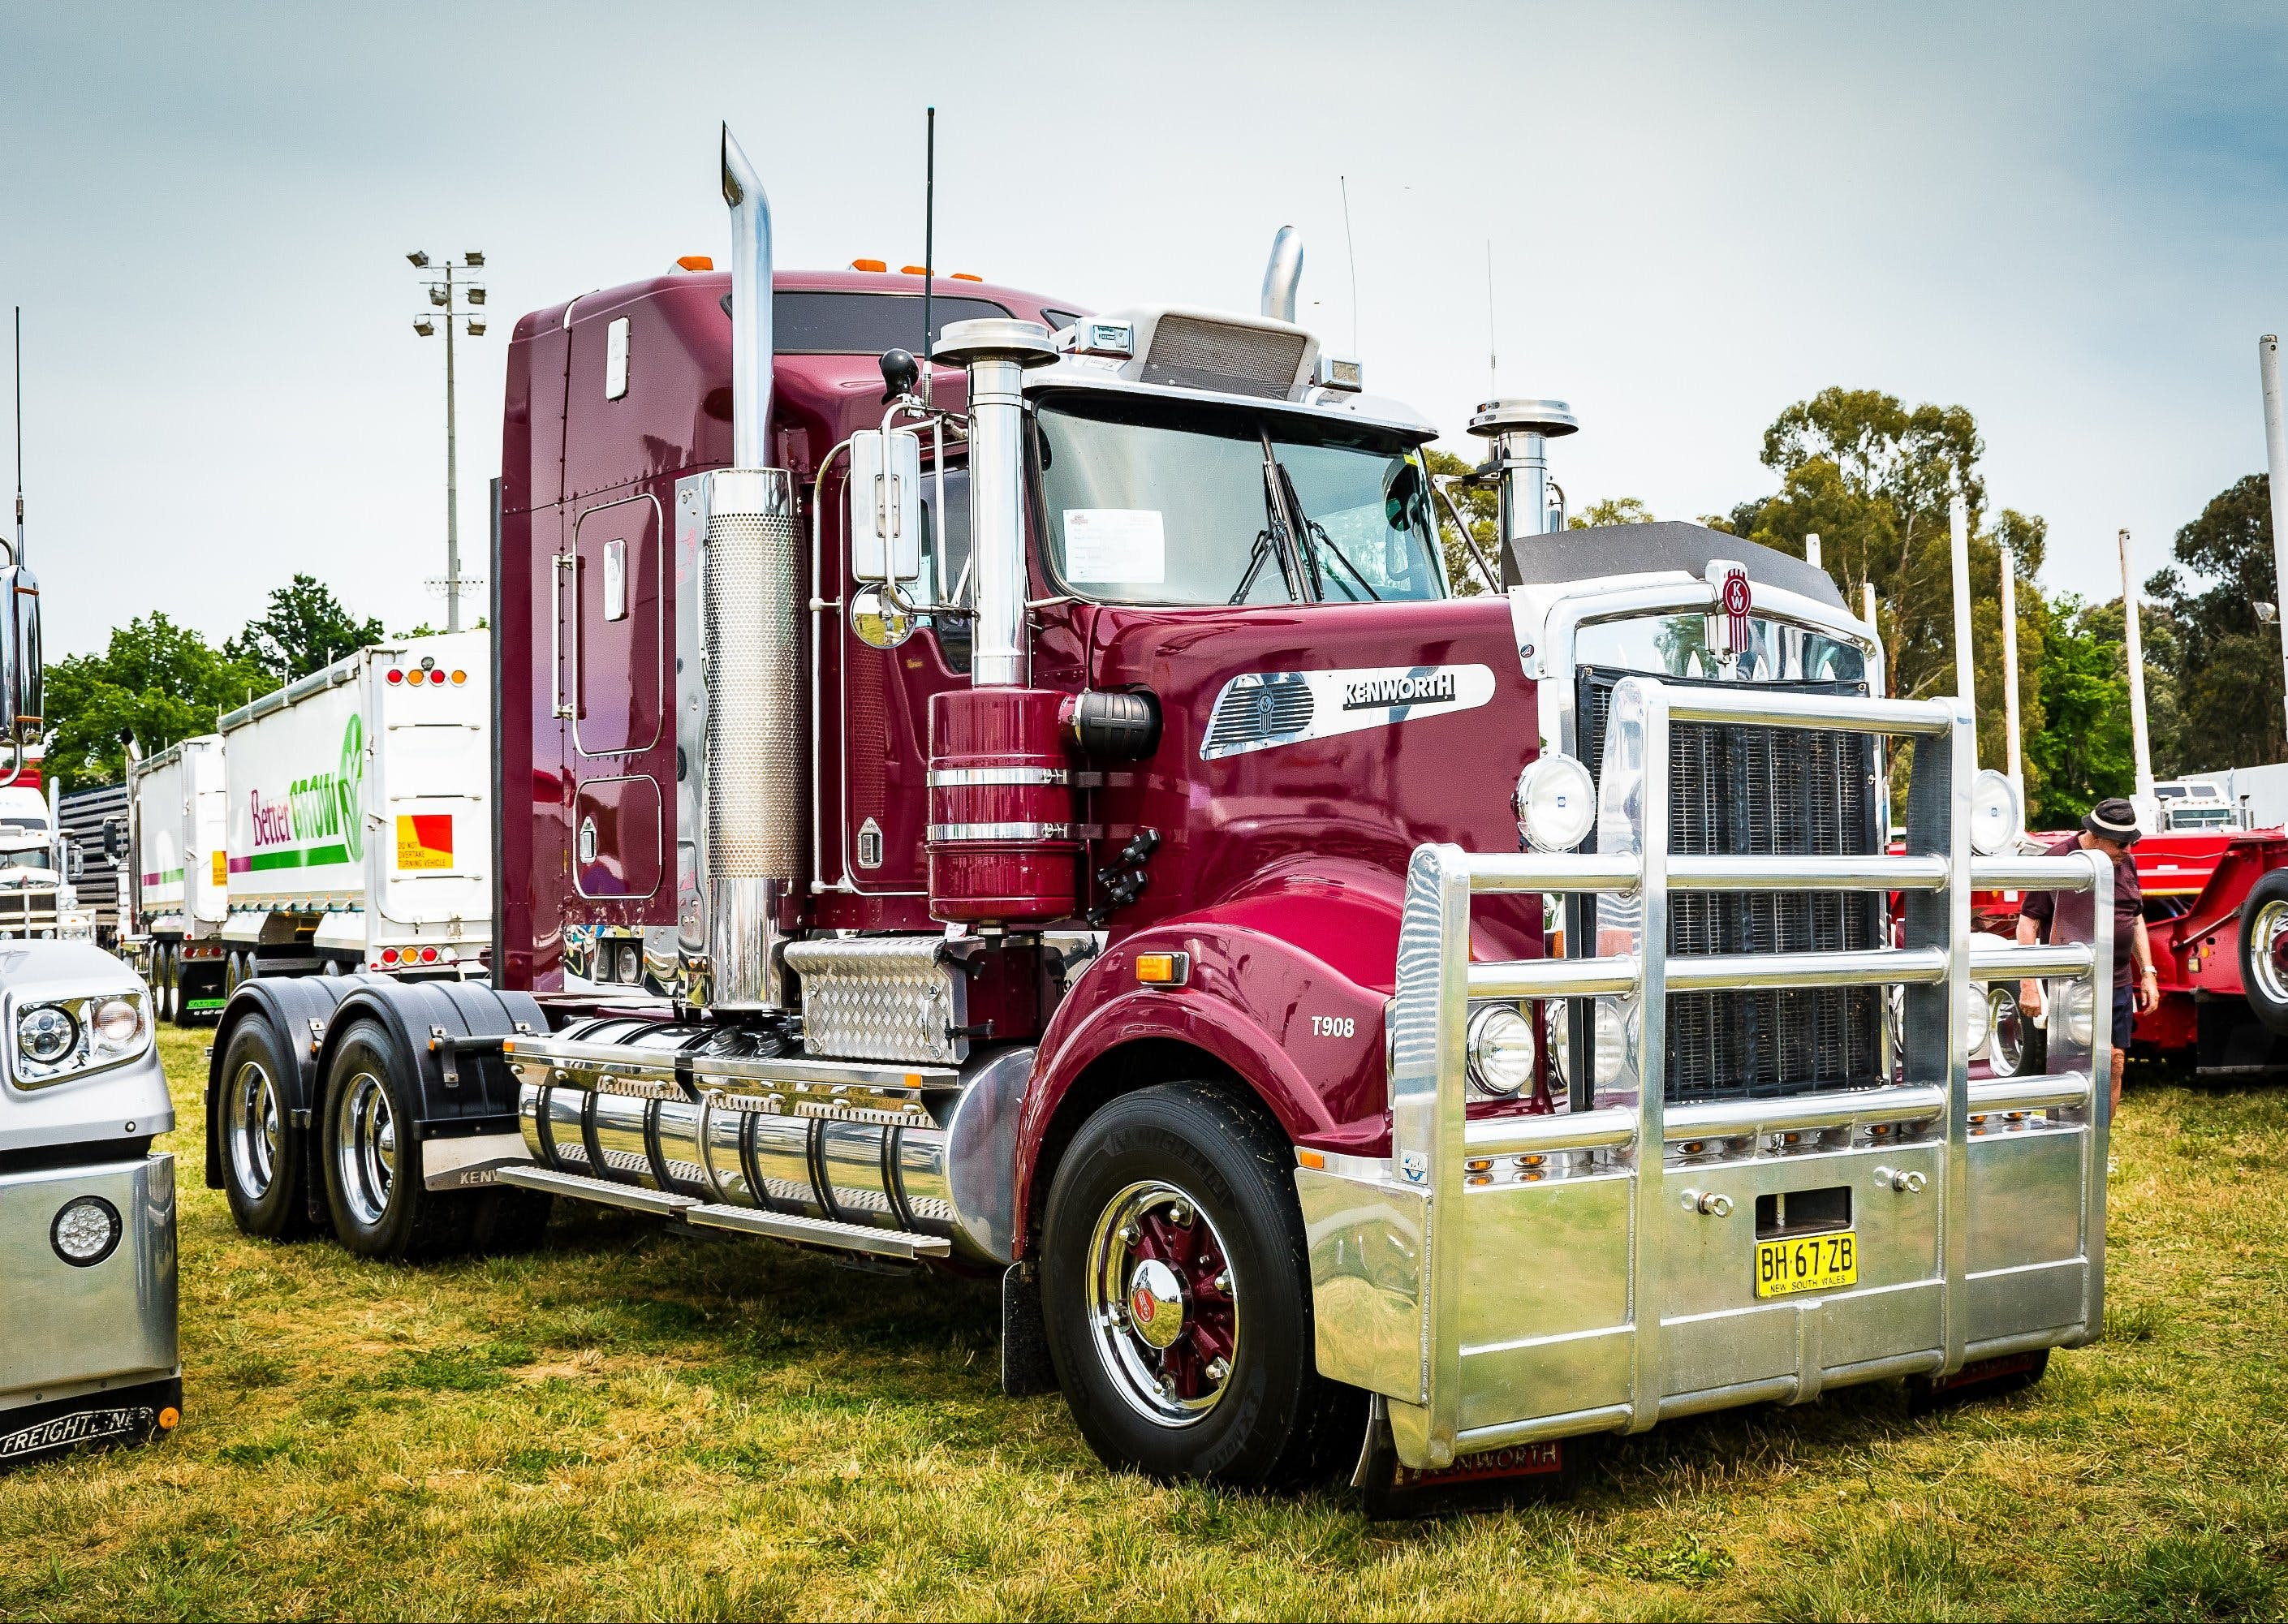 Dane Ballinger Memorial Truck Show - Australia Accommodation